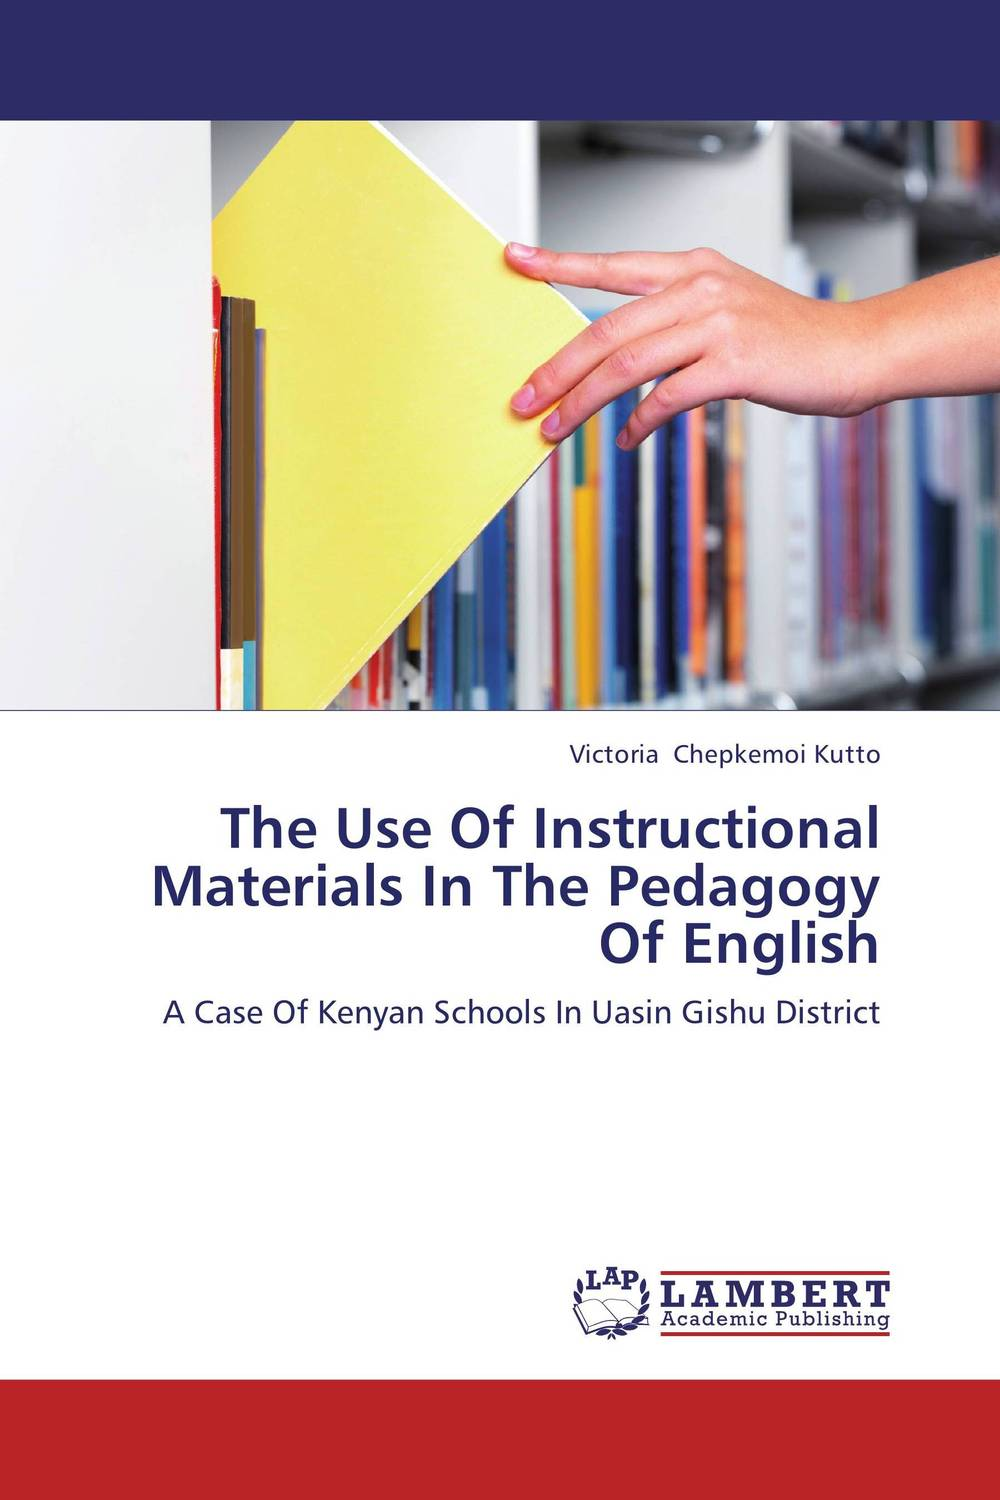 The Use Of Instructional Materials In The Pedagogy Of English the use of instructional materials in the pedagogy of english